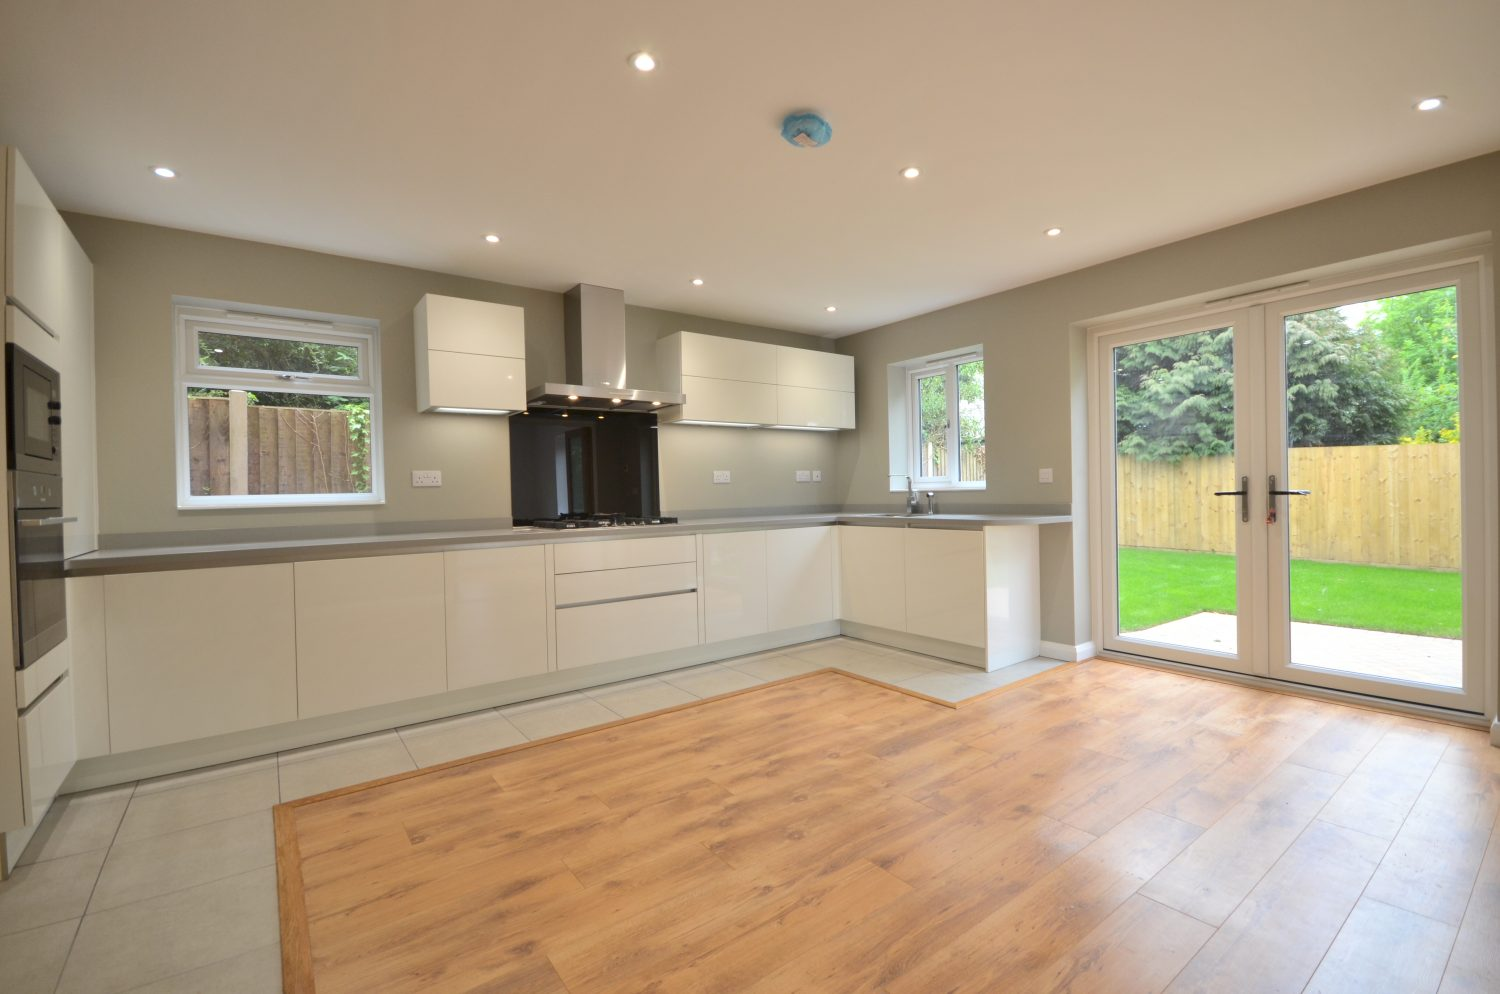 Bespoke Kitchen with a wooden floor joining on to a garden from George Staffordshire Developments Ltd